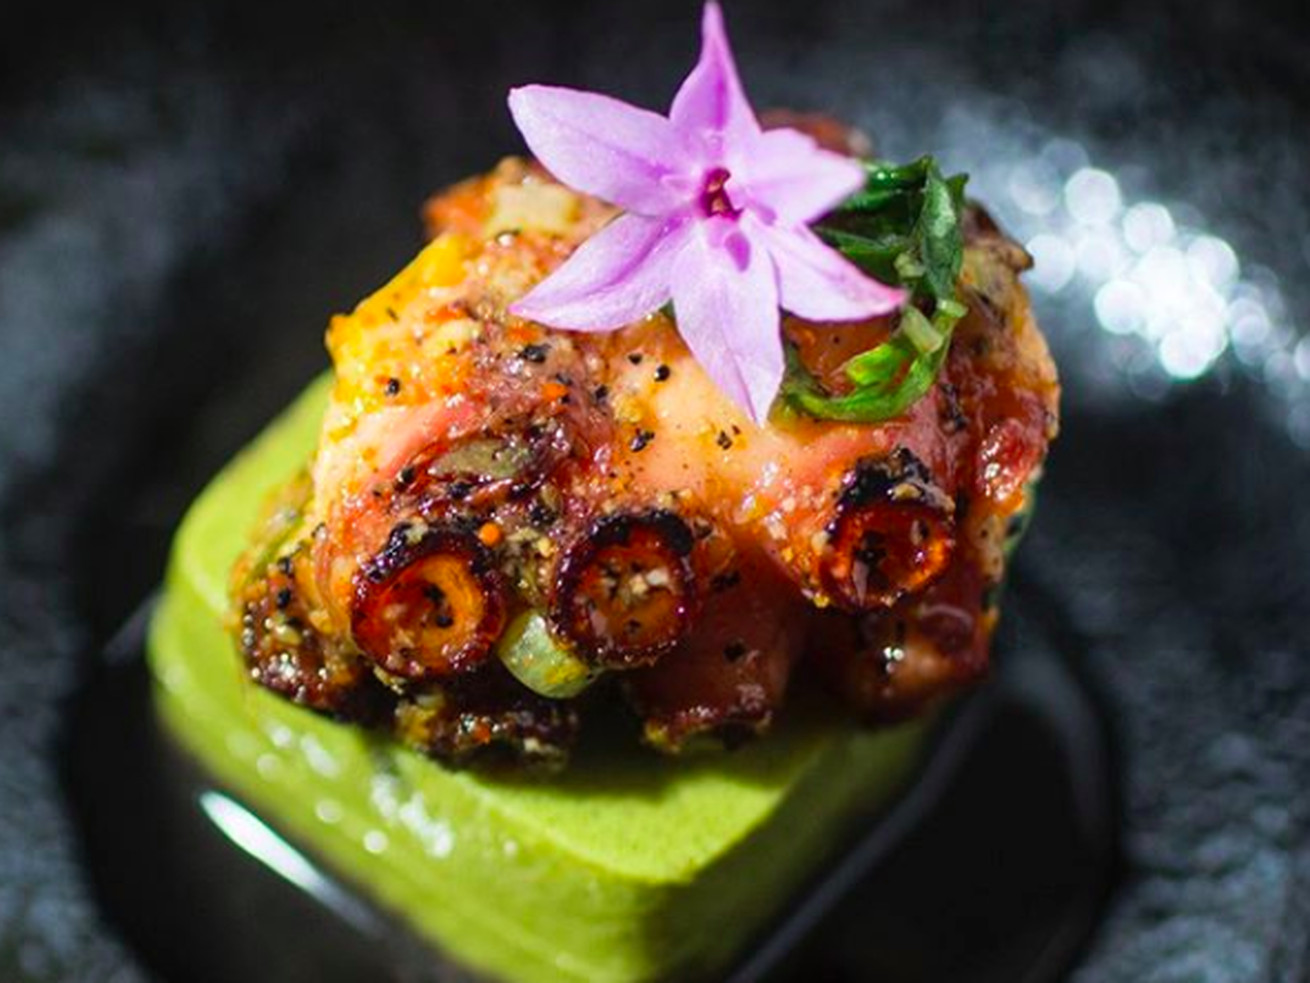 A place of octopus with a flower on a dark plate.